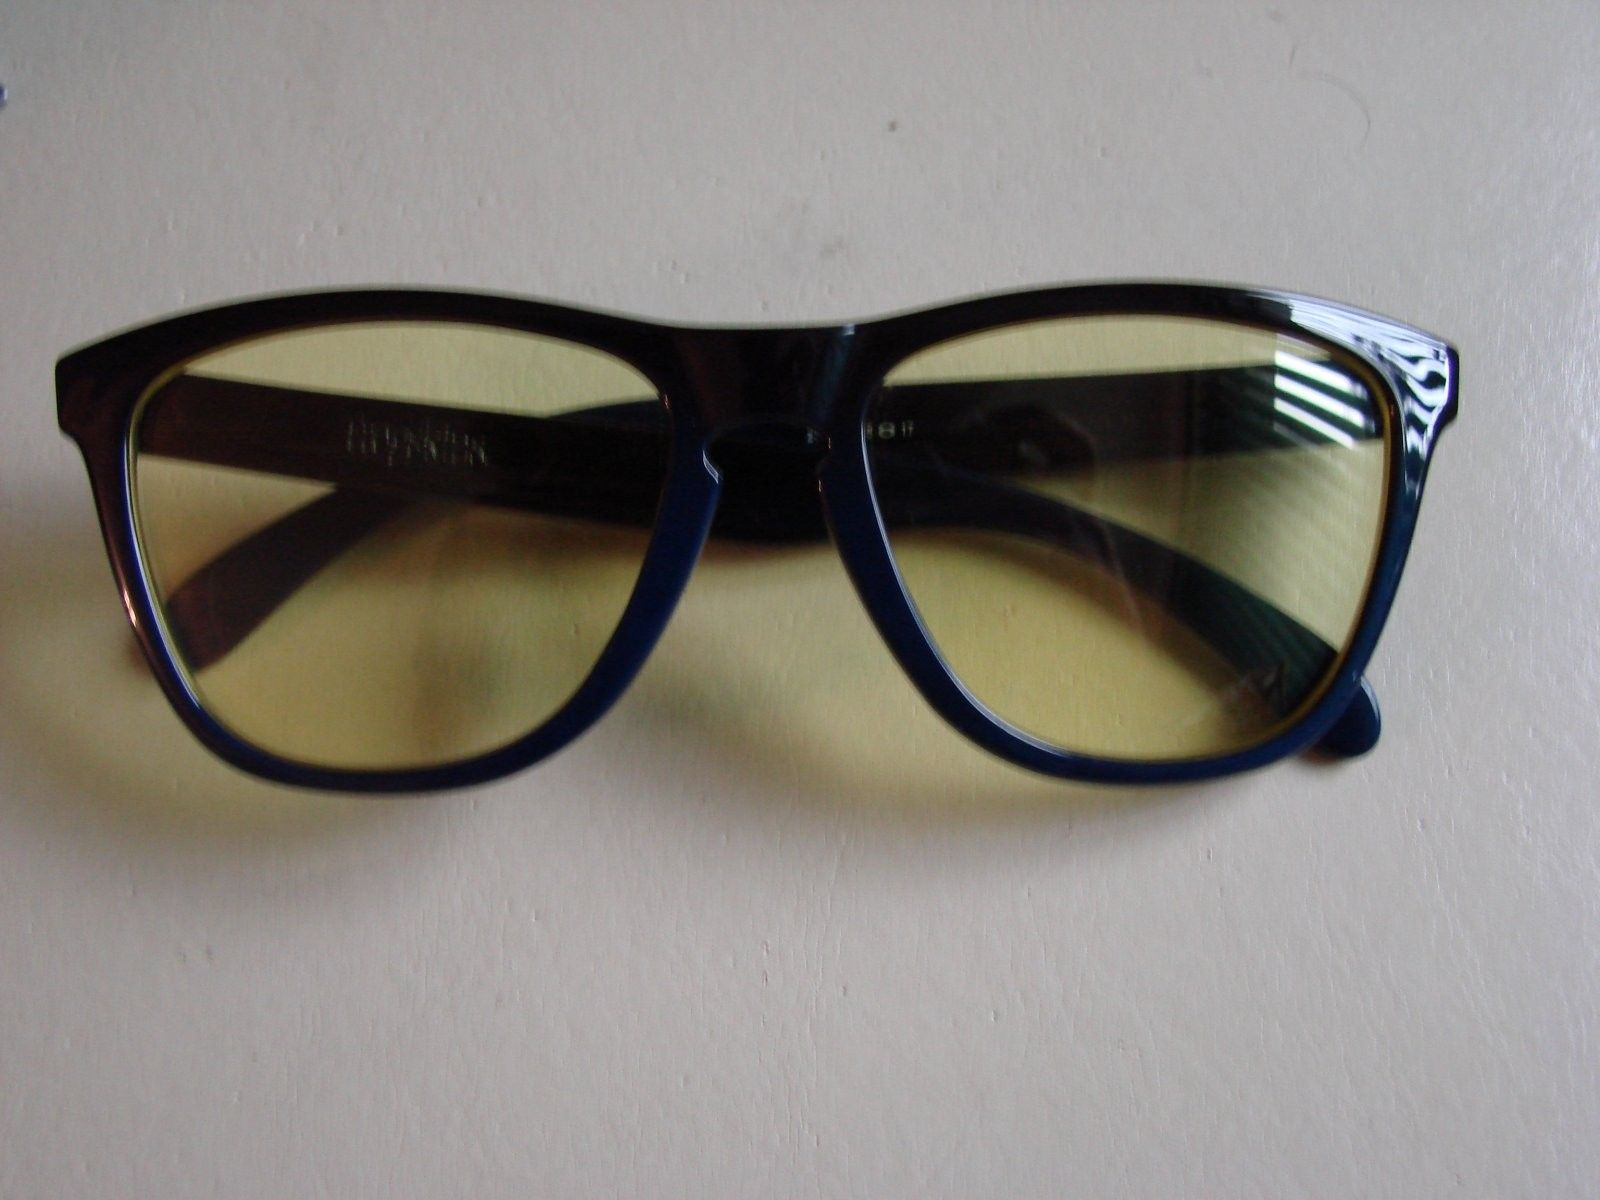 SOLD - BEAMS 35th Anniversary - Black/Navy Fade - DSC00013.JPG